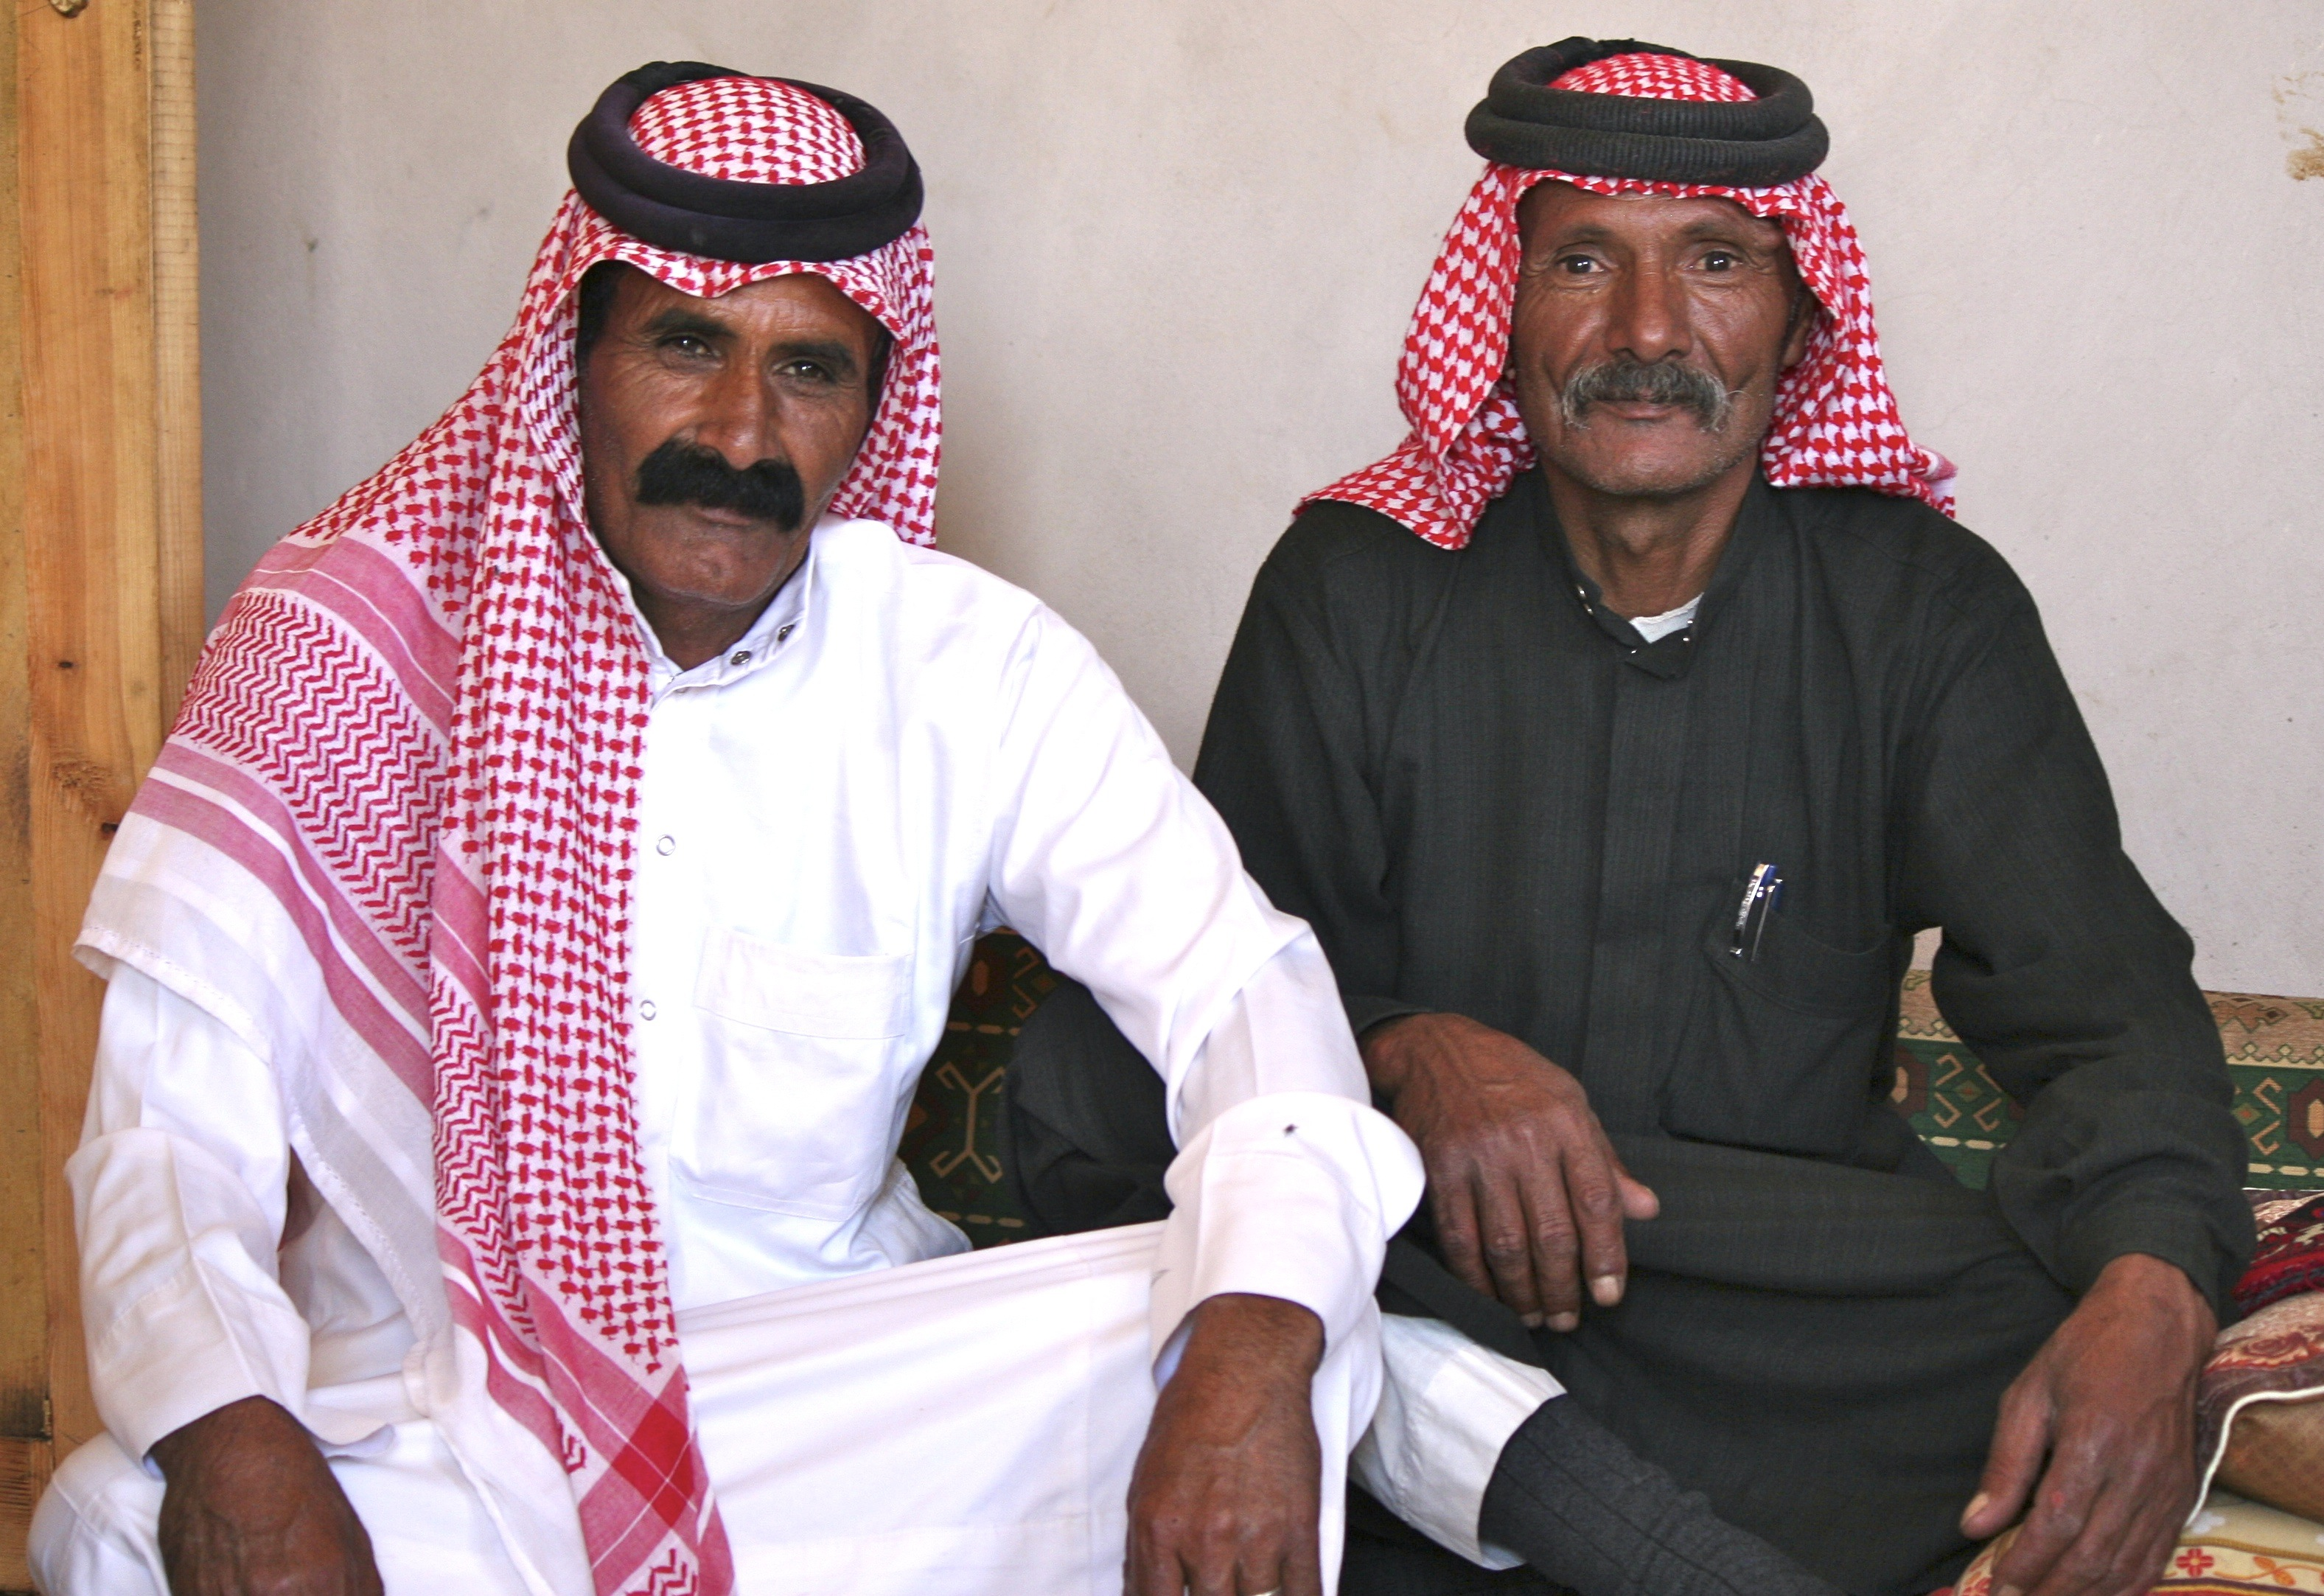 Two of our friends from the Ammarin Bedouin tribe in Petra Jordan.